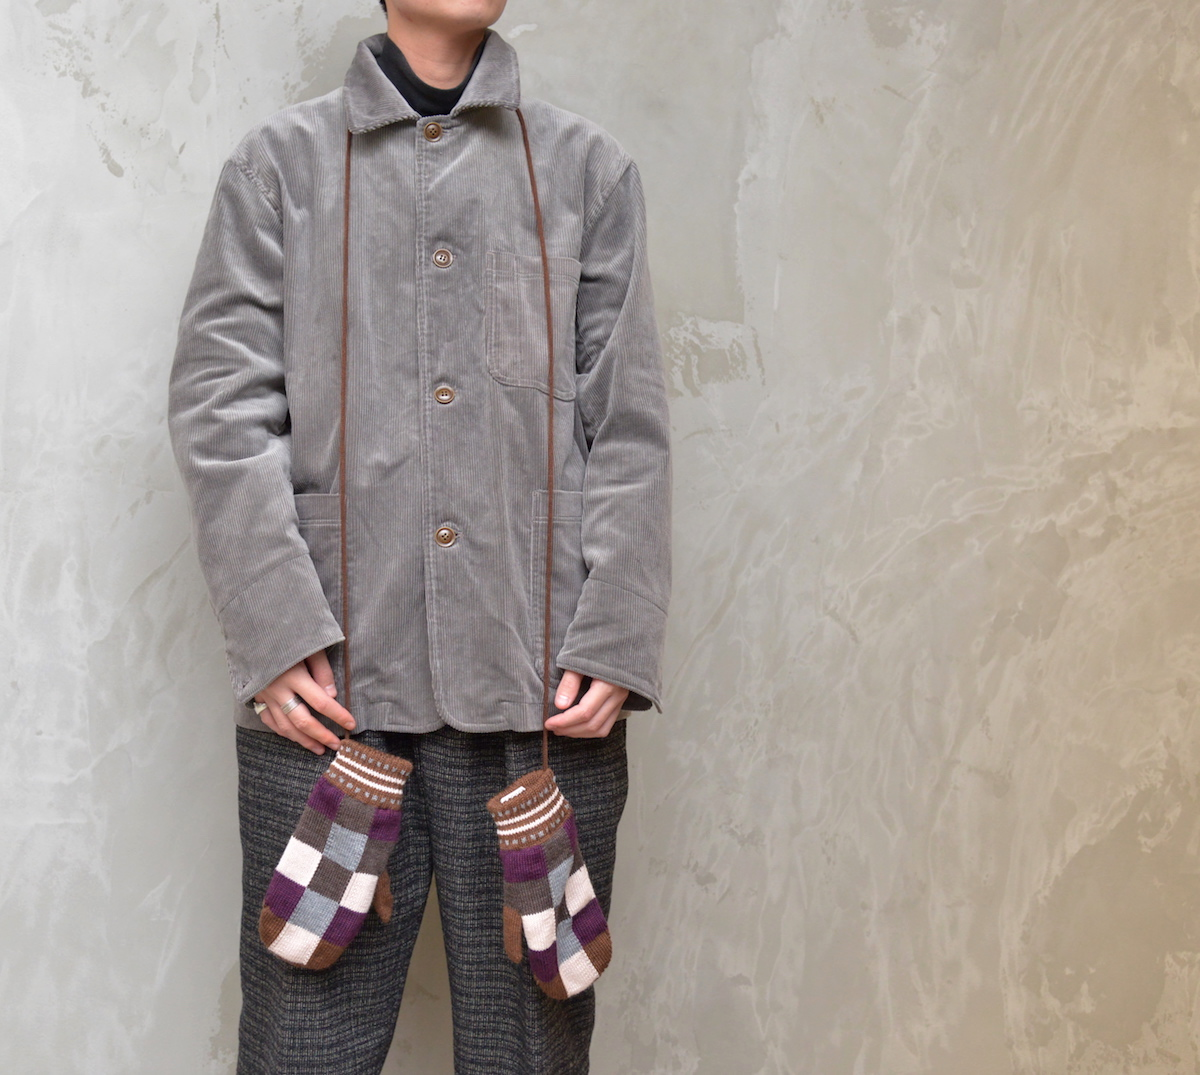 NOROLL 「 NOROLL PATCH MITON / BROWN 」